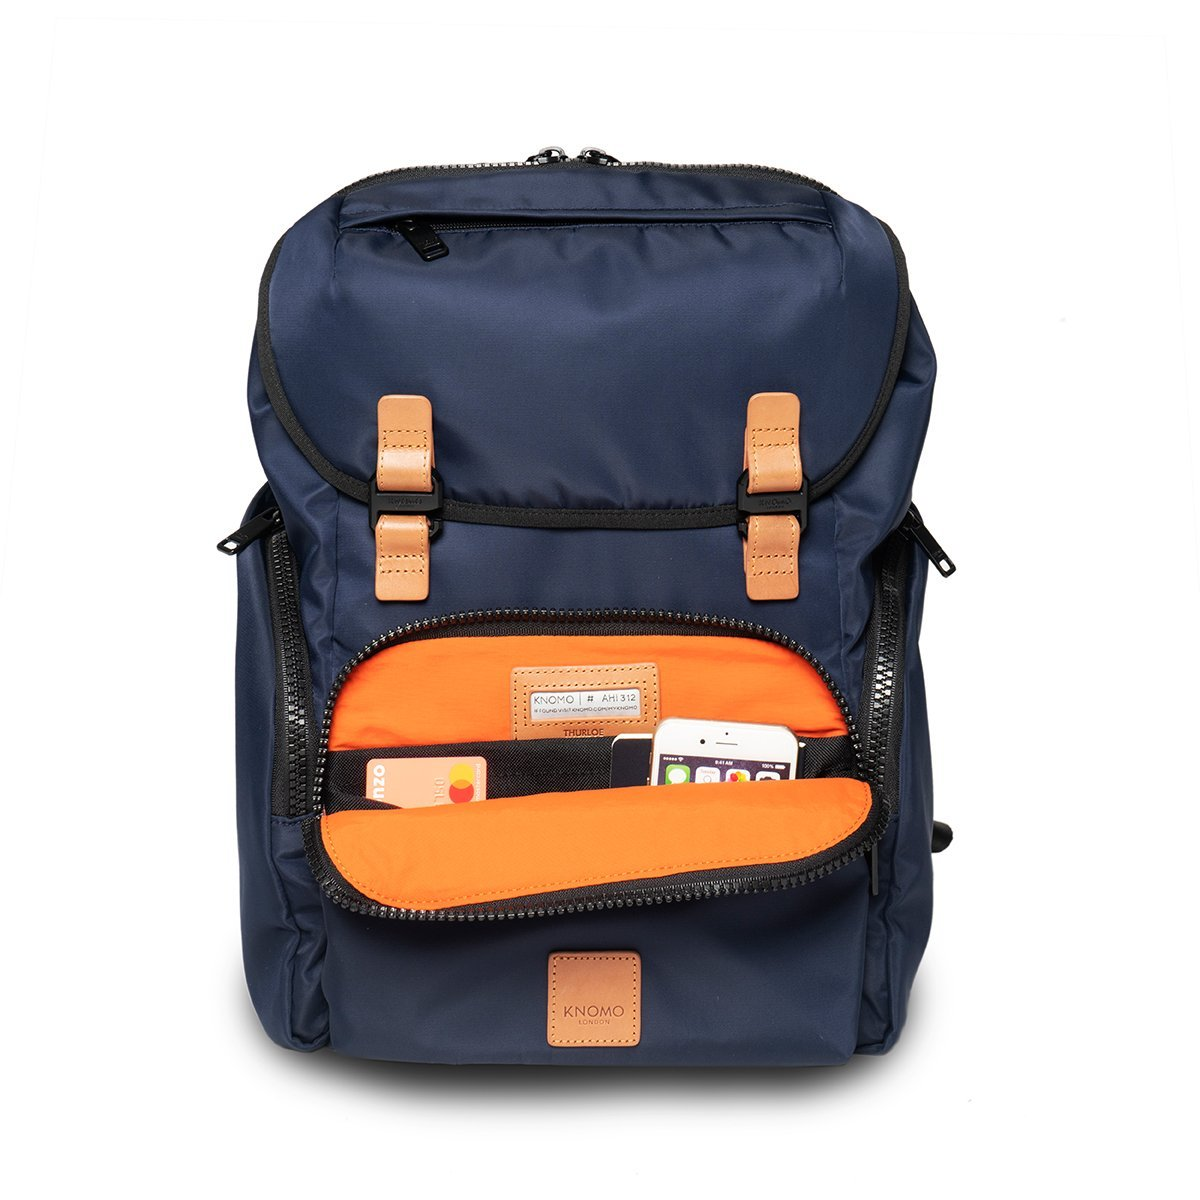 "KNOMO Thurloe Backpack Front Pocket With Items 15"" -  Dark Navy 